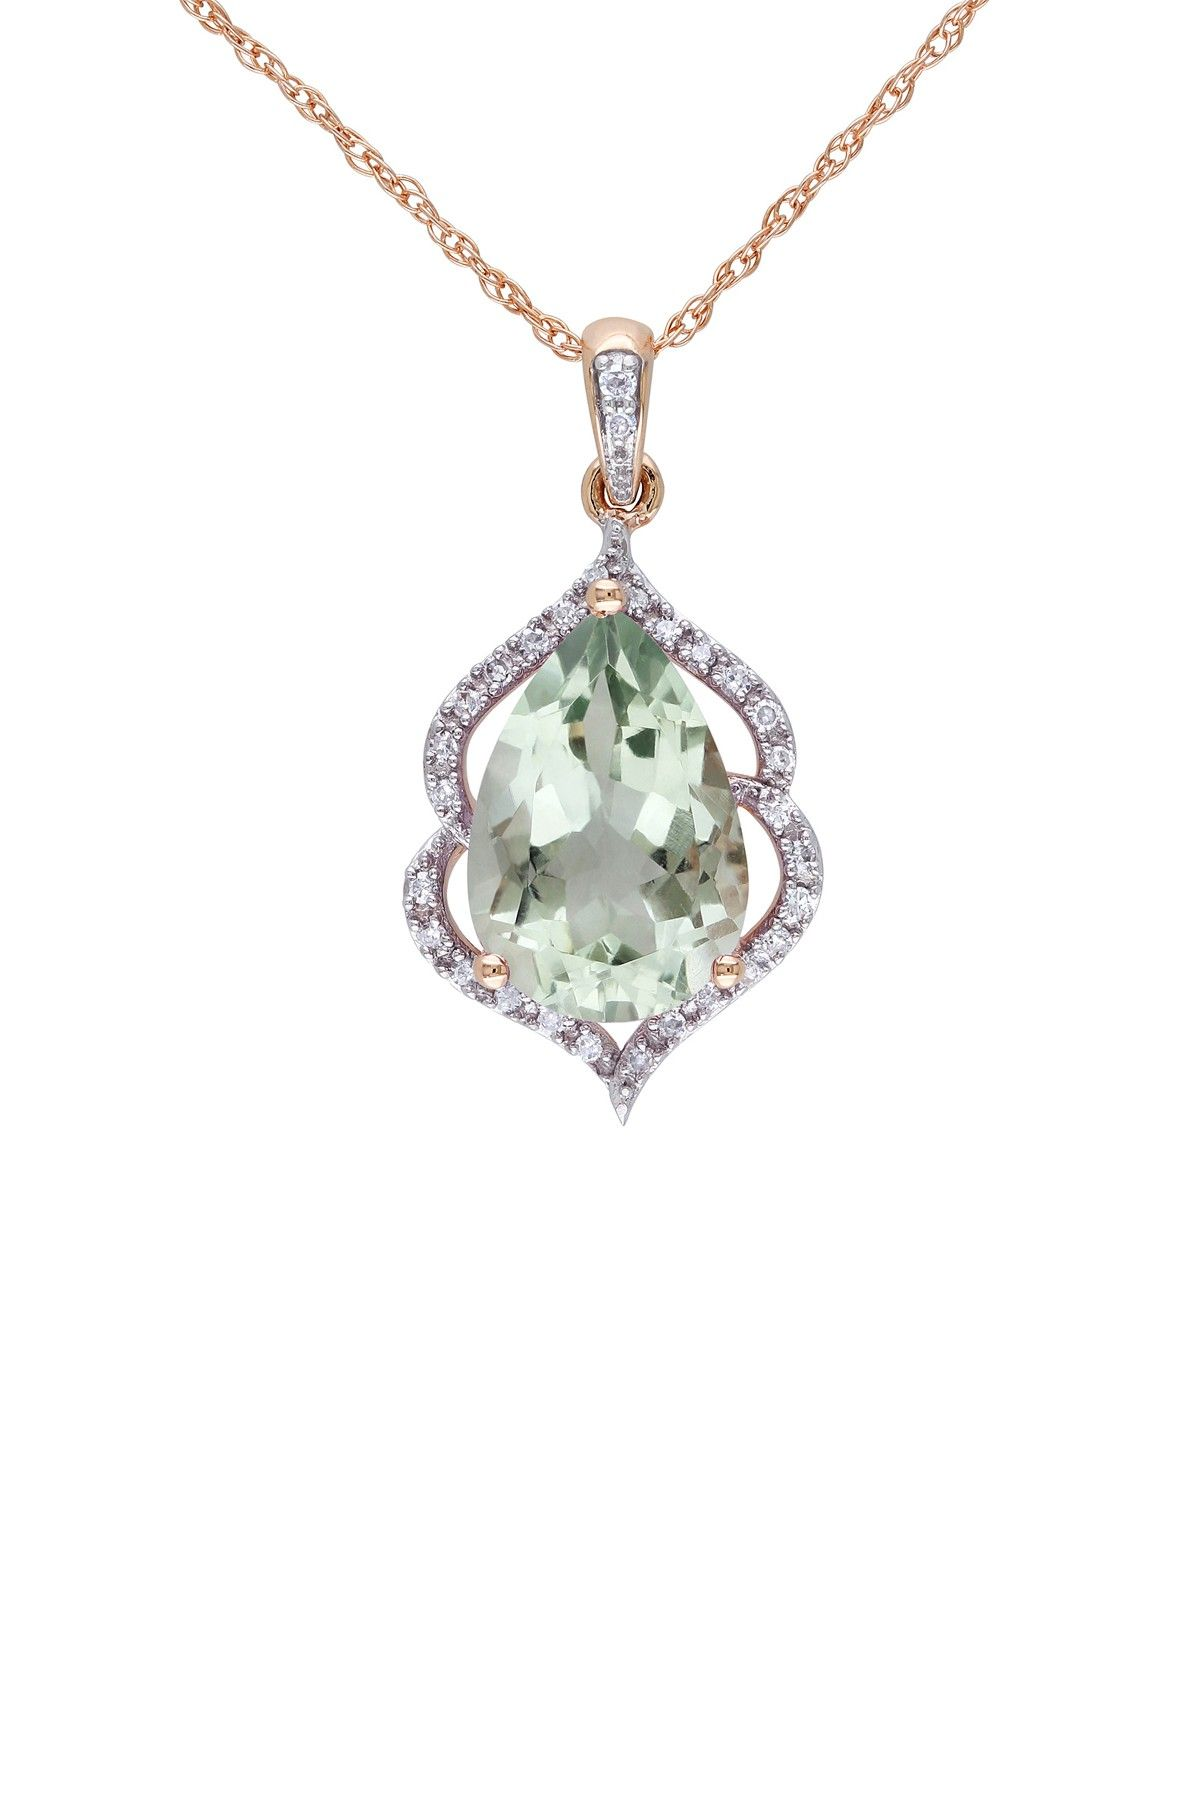 10k rose gold diamond halo green amethyst pendant necklace 010 10k rose gold diamond halo green amethyst pendant necklace 010 ctw aloadofball Image collections